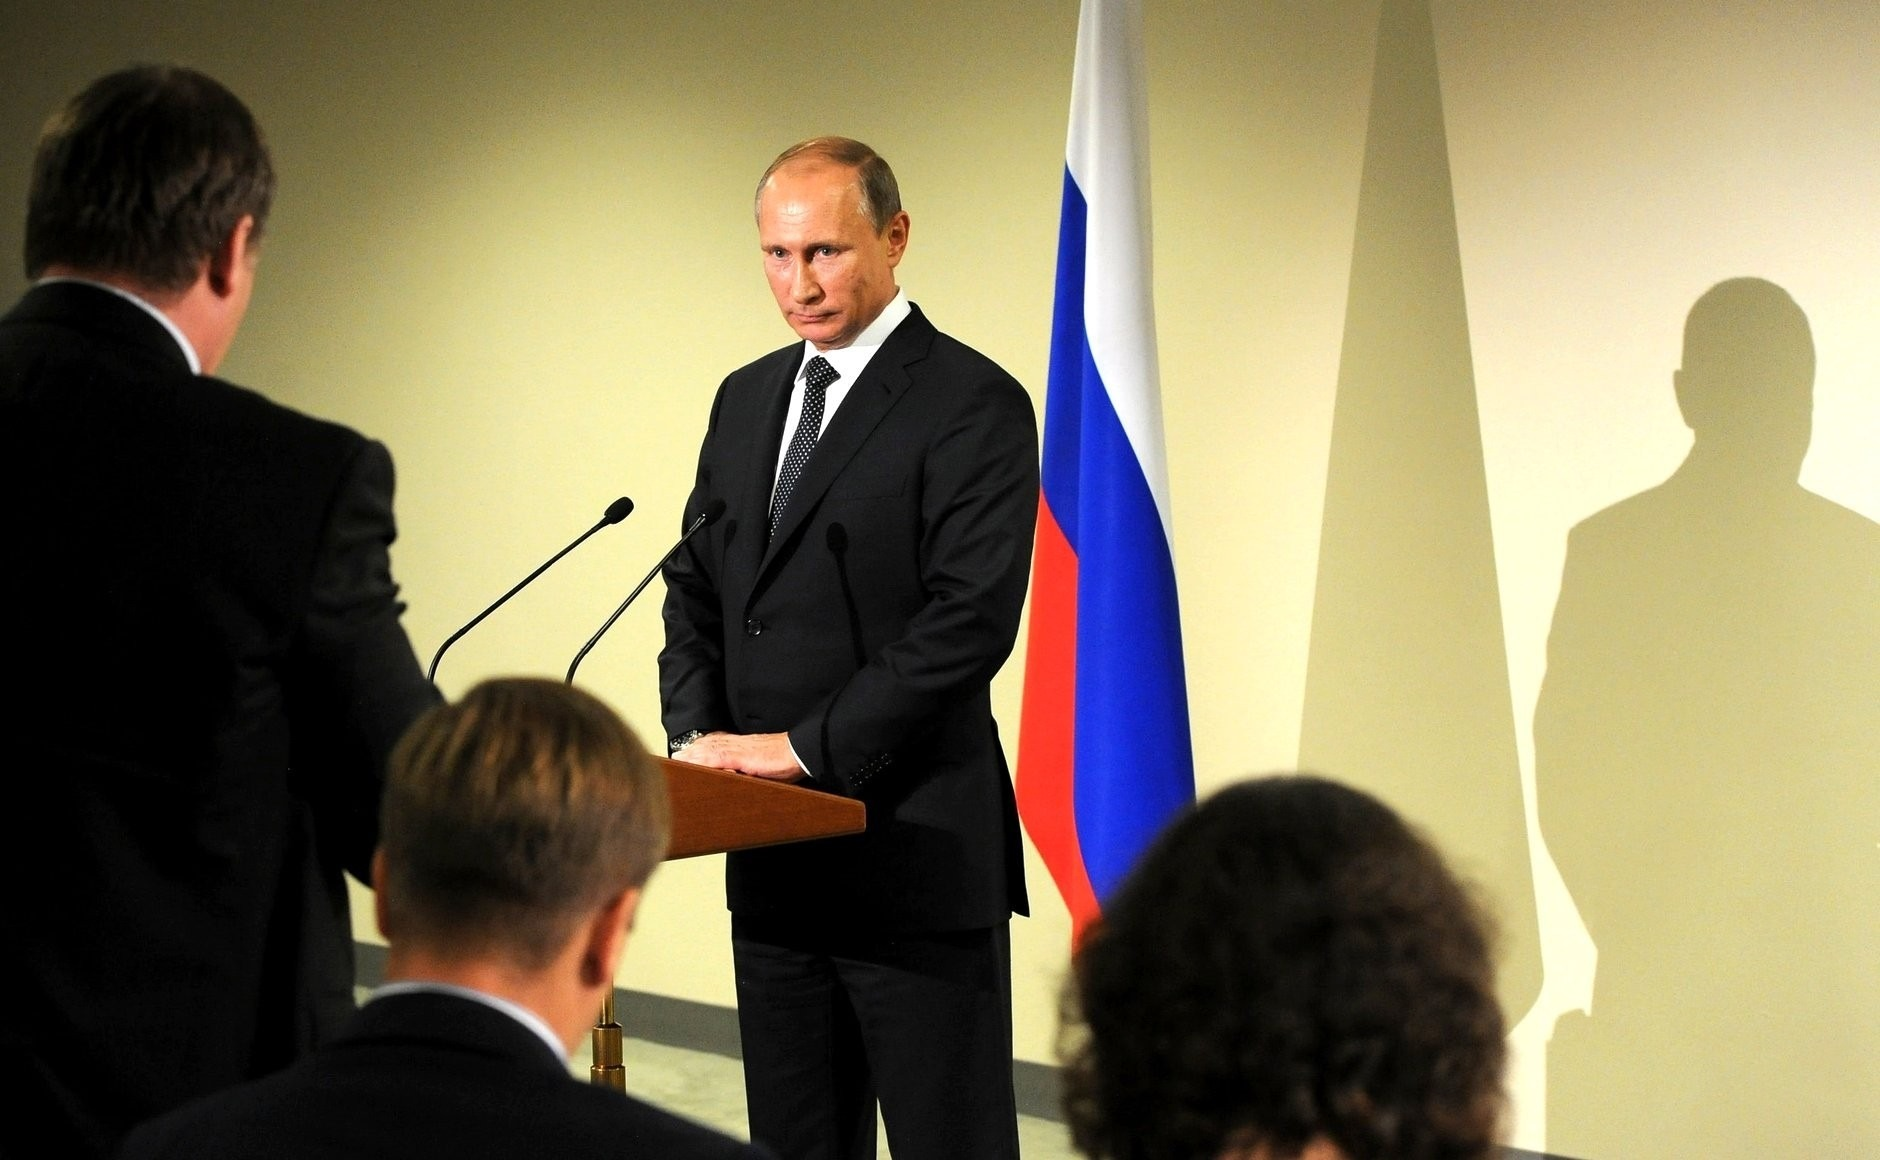 Russian President Putin's press conference in New York